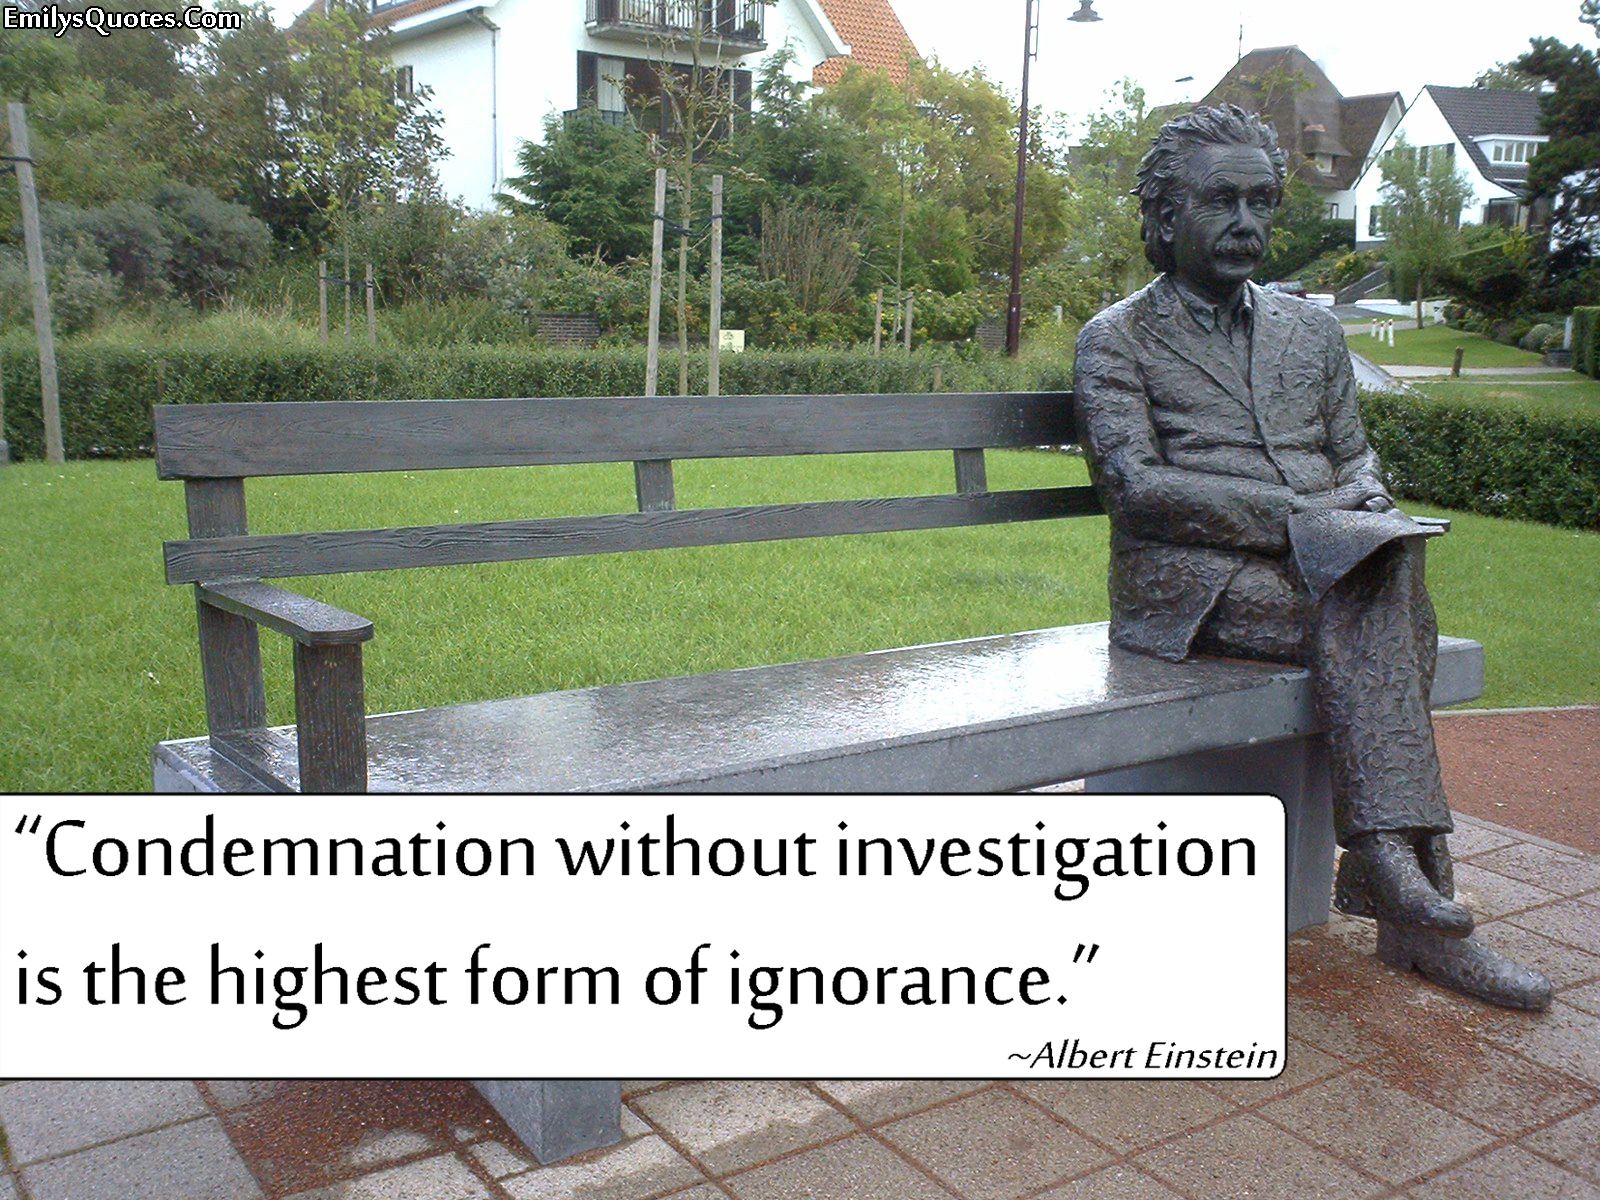 EmilysQuotes.Com - condemnation, investigation, ignorance, intelligence, Albert Einstein